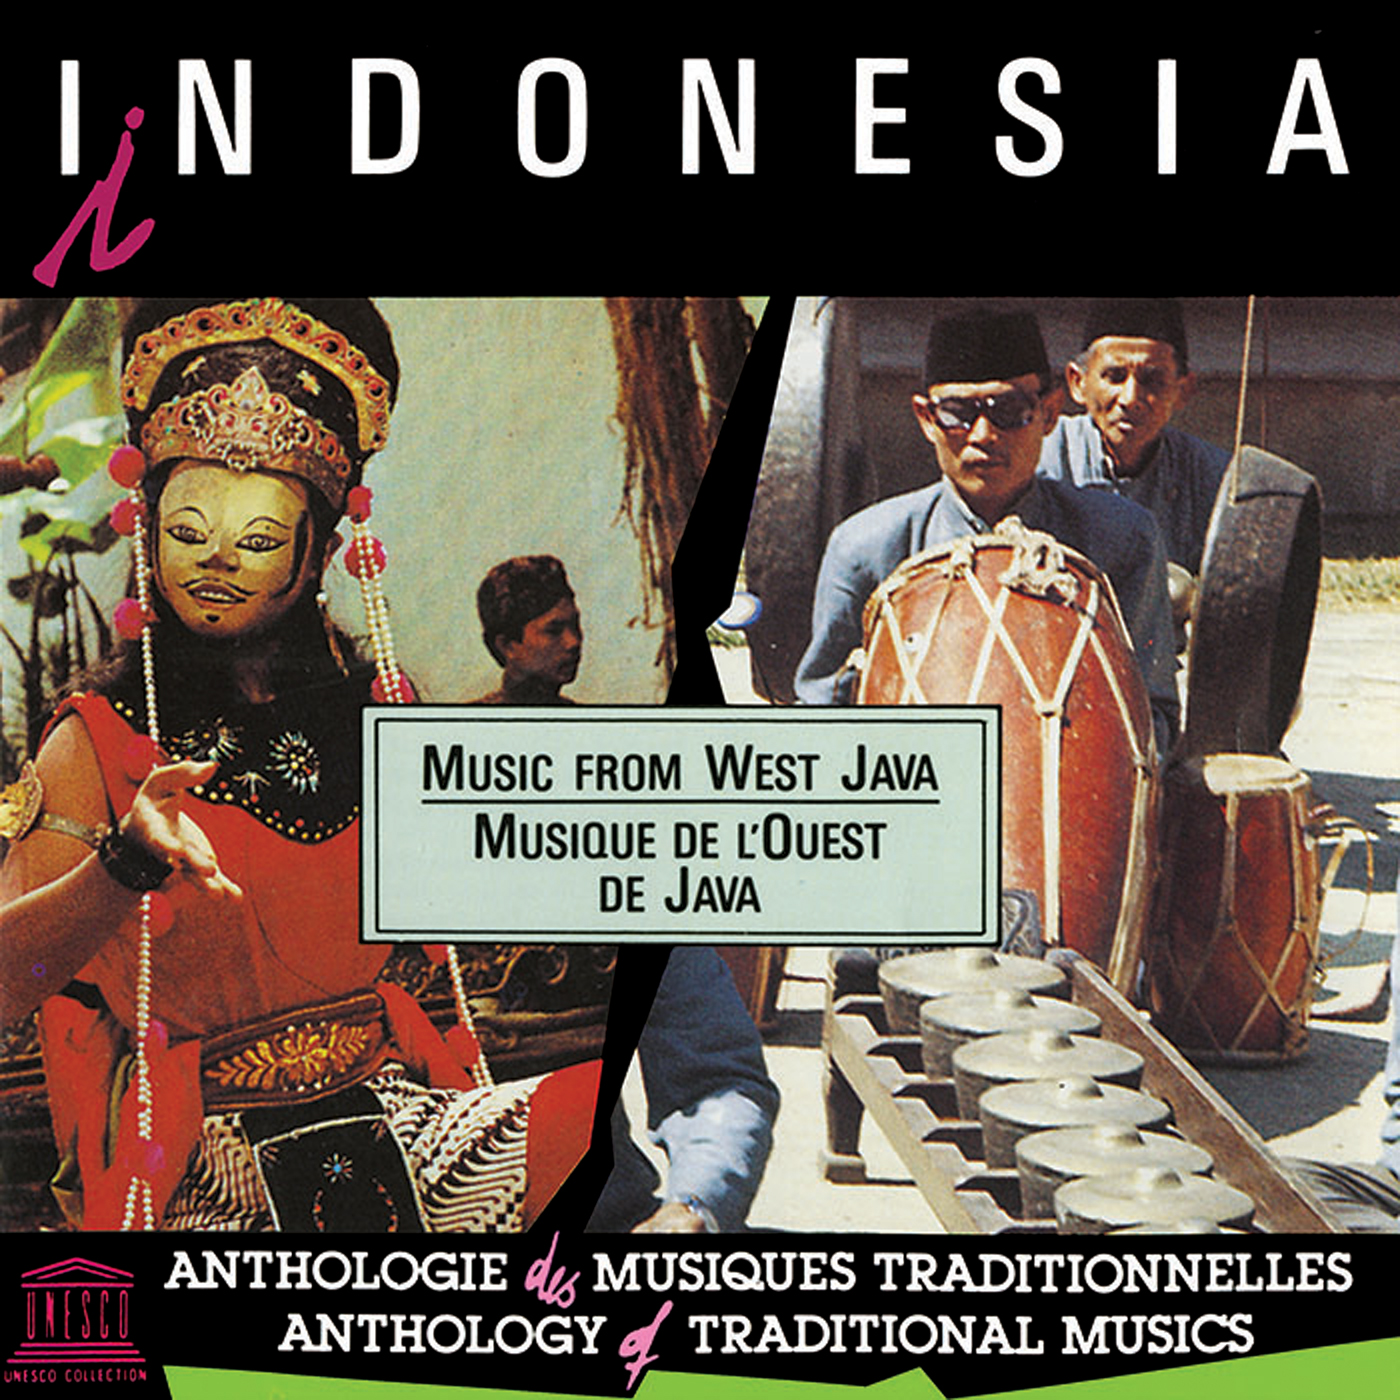 Opening Song Indonesian Vers Cover By: Indonesia: Music From West Java